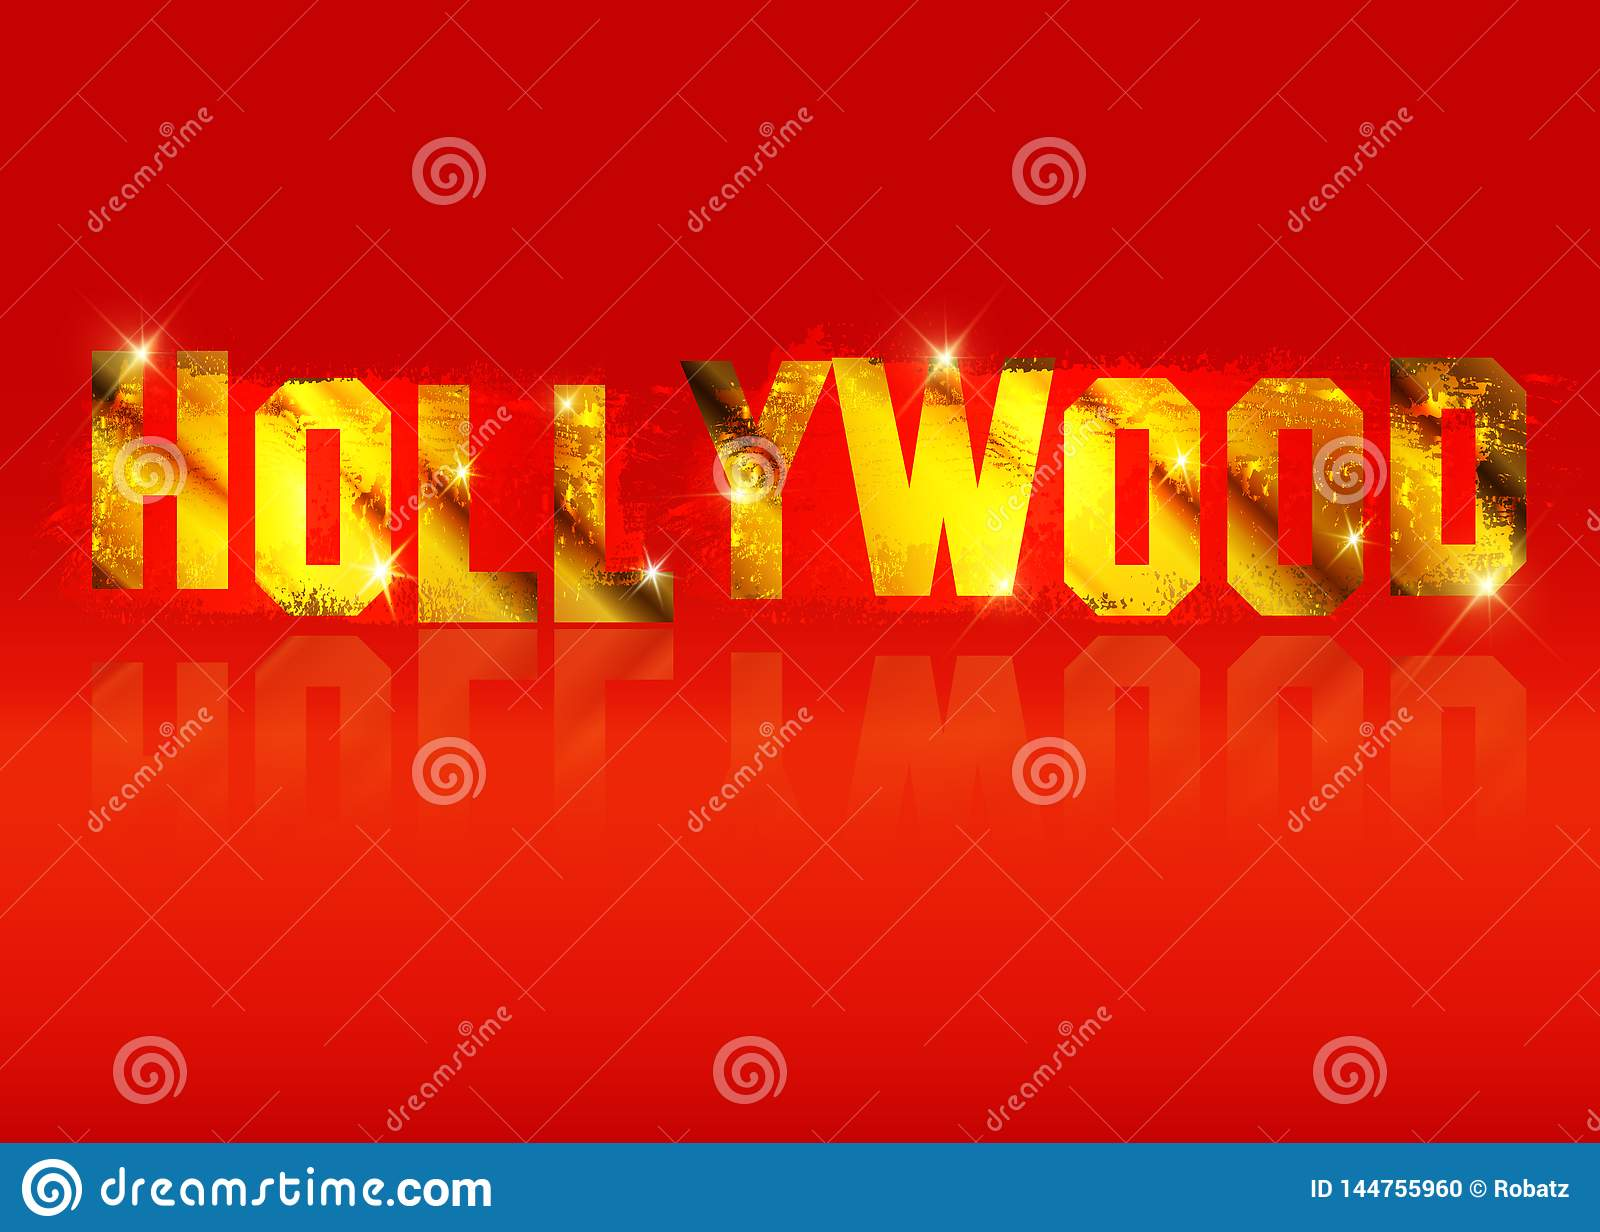 Hollywood old golden vector logo , gold letters isolated or red background